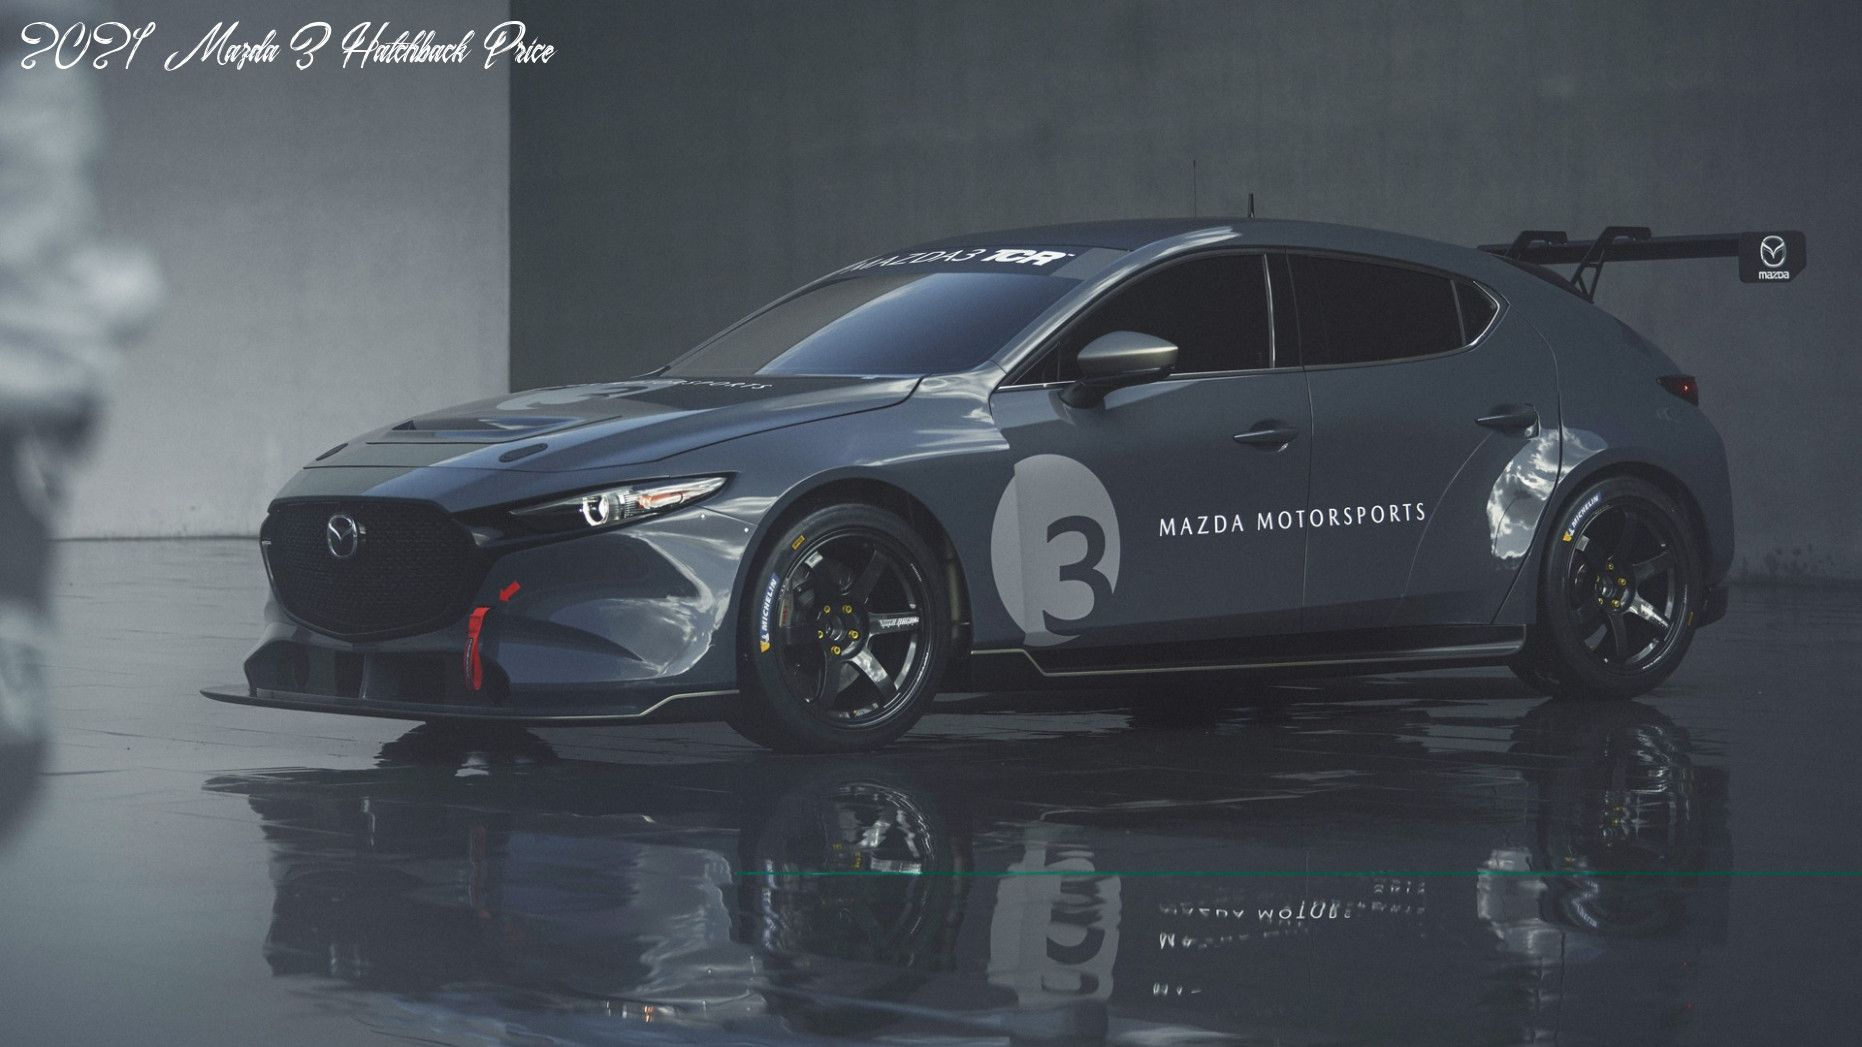 2021 Mazda 3 Hatchback Price Concept And Review In 2020 Mazda Mazda 3 Hatchback Mazda 3